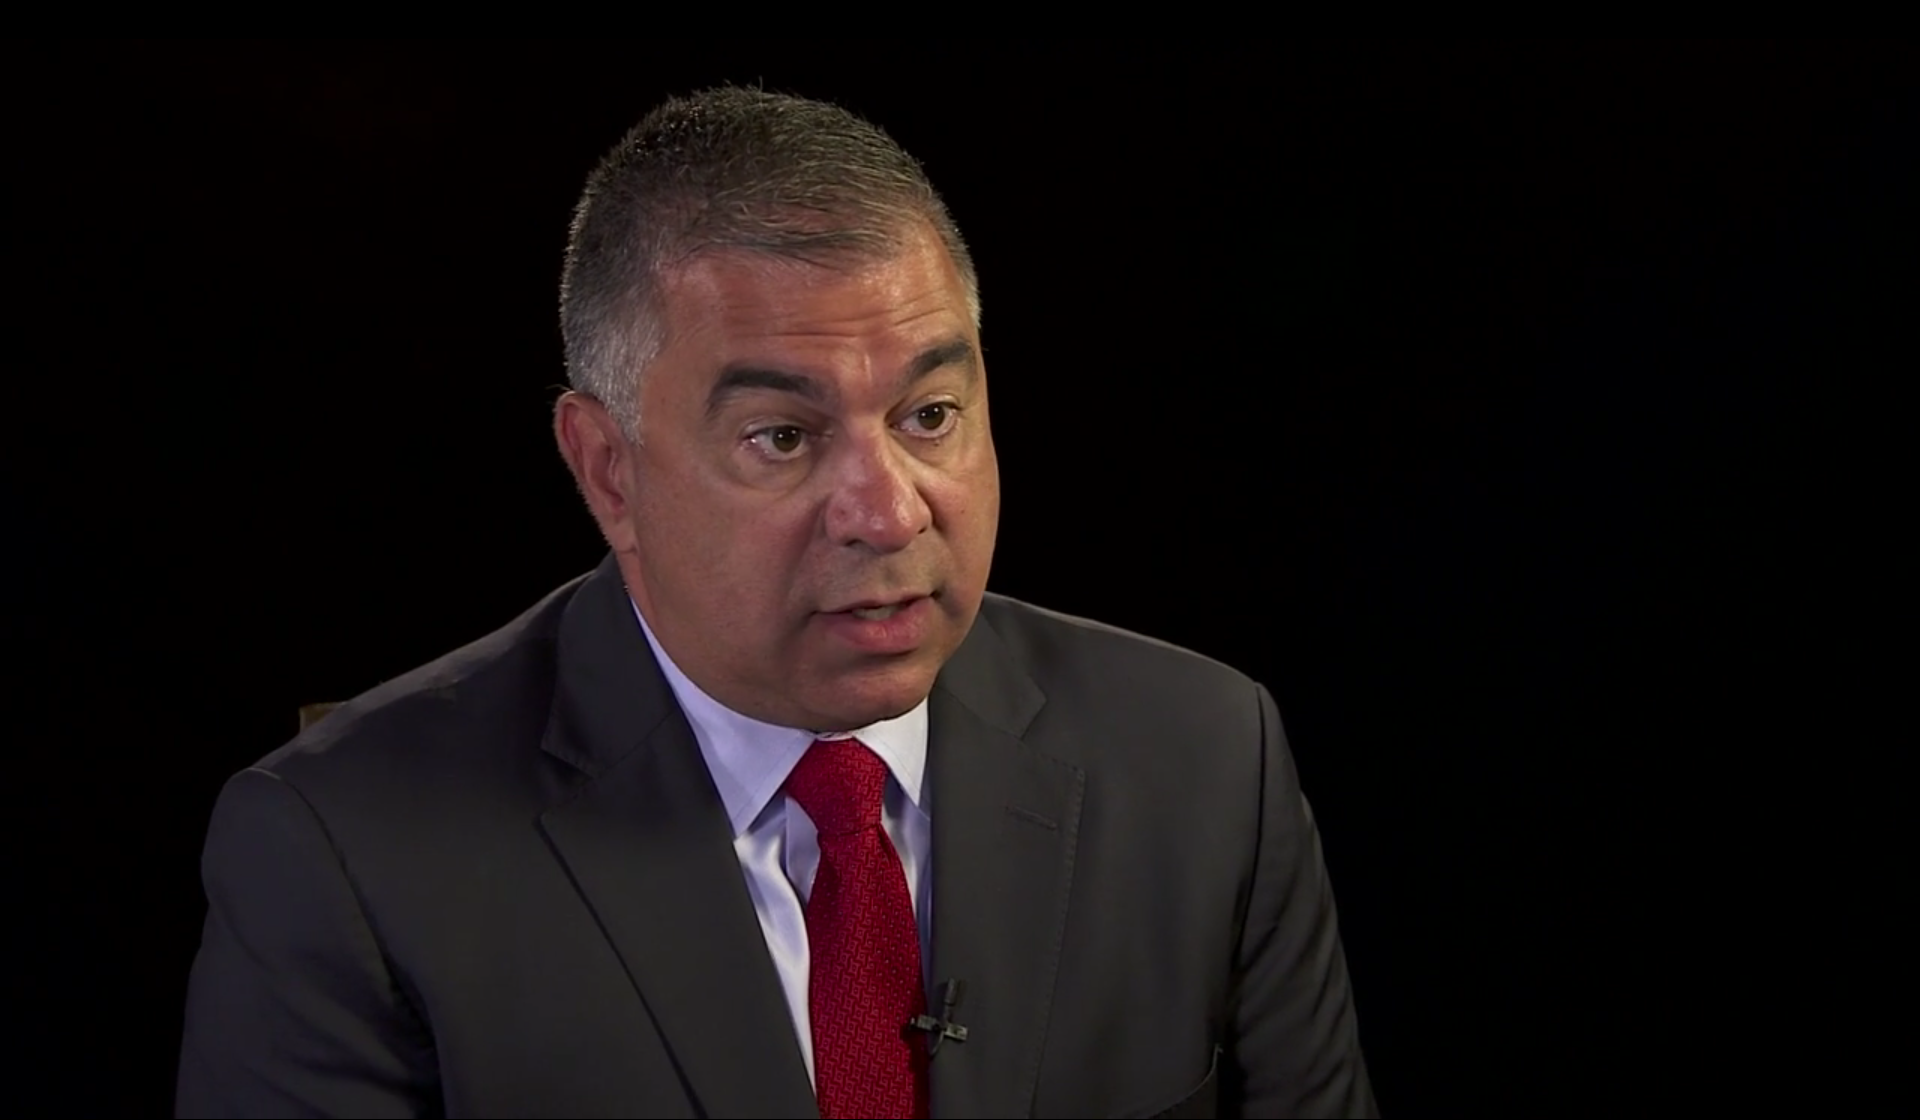 David bossie deputy trump campaign manager photo yahoo news video